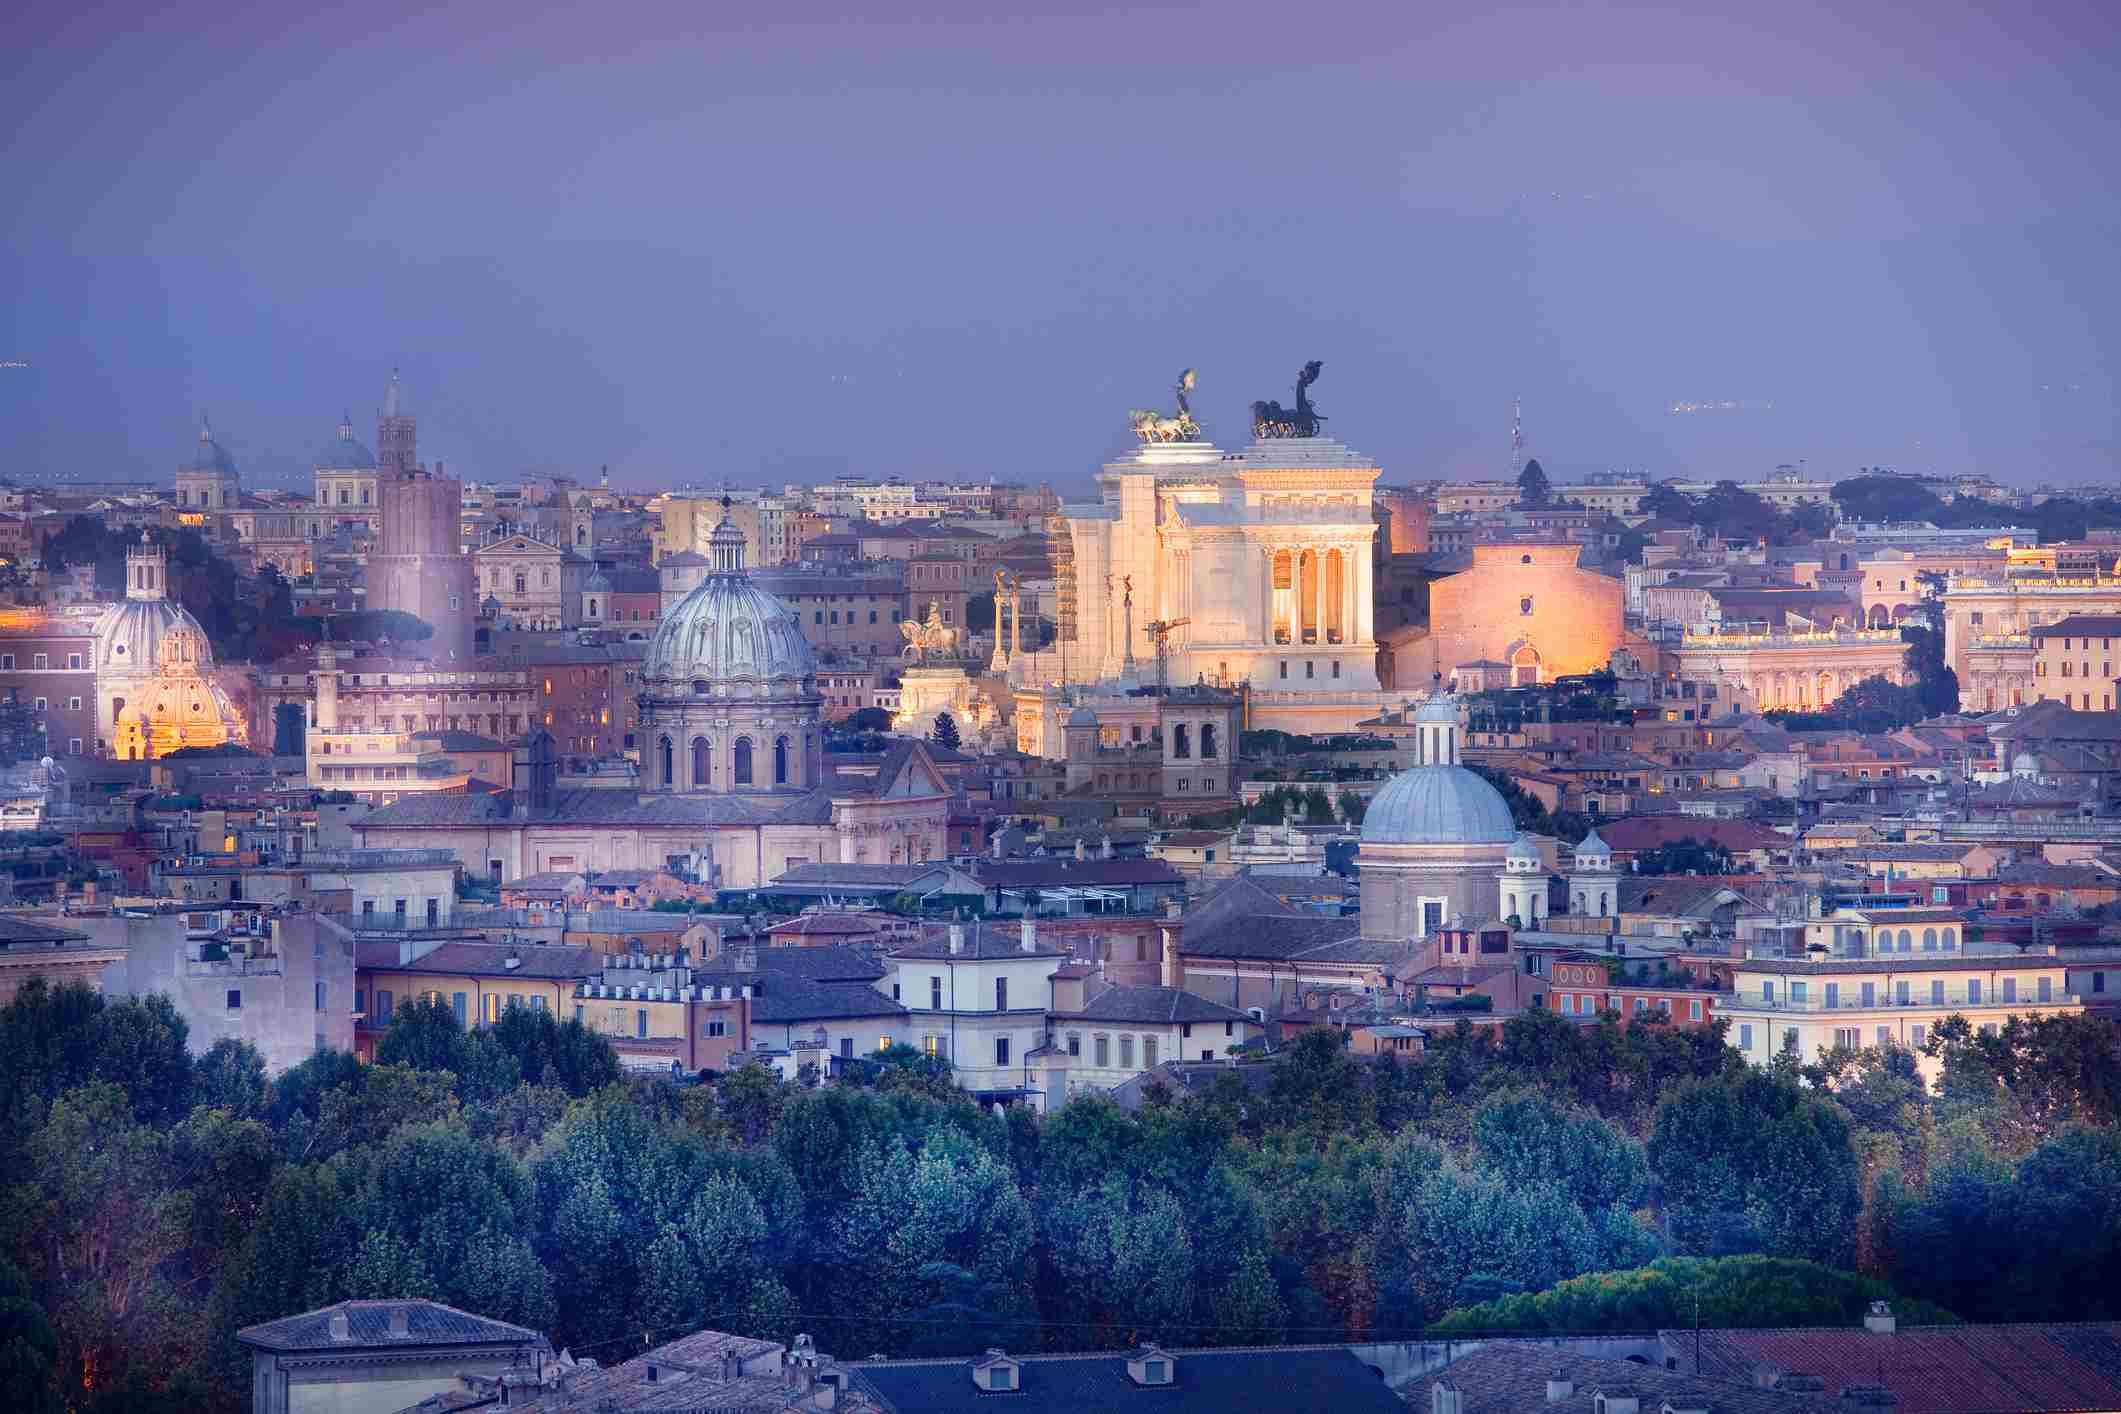 Rome skyline and ancient monuments